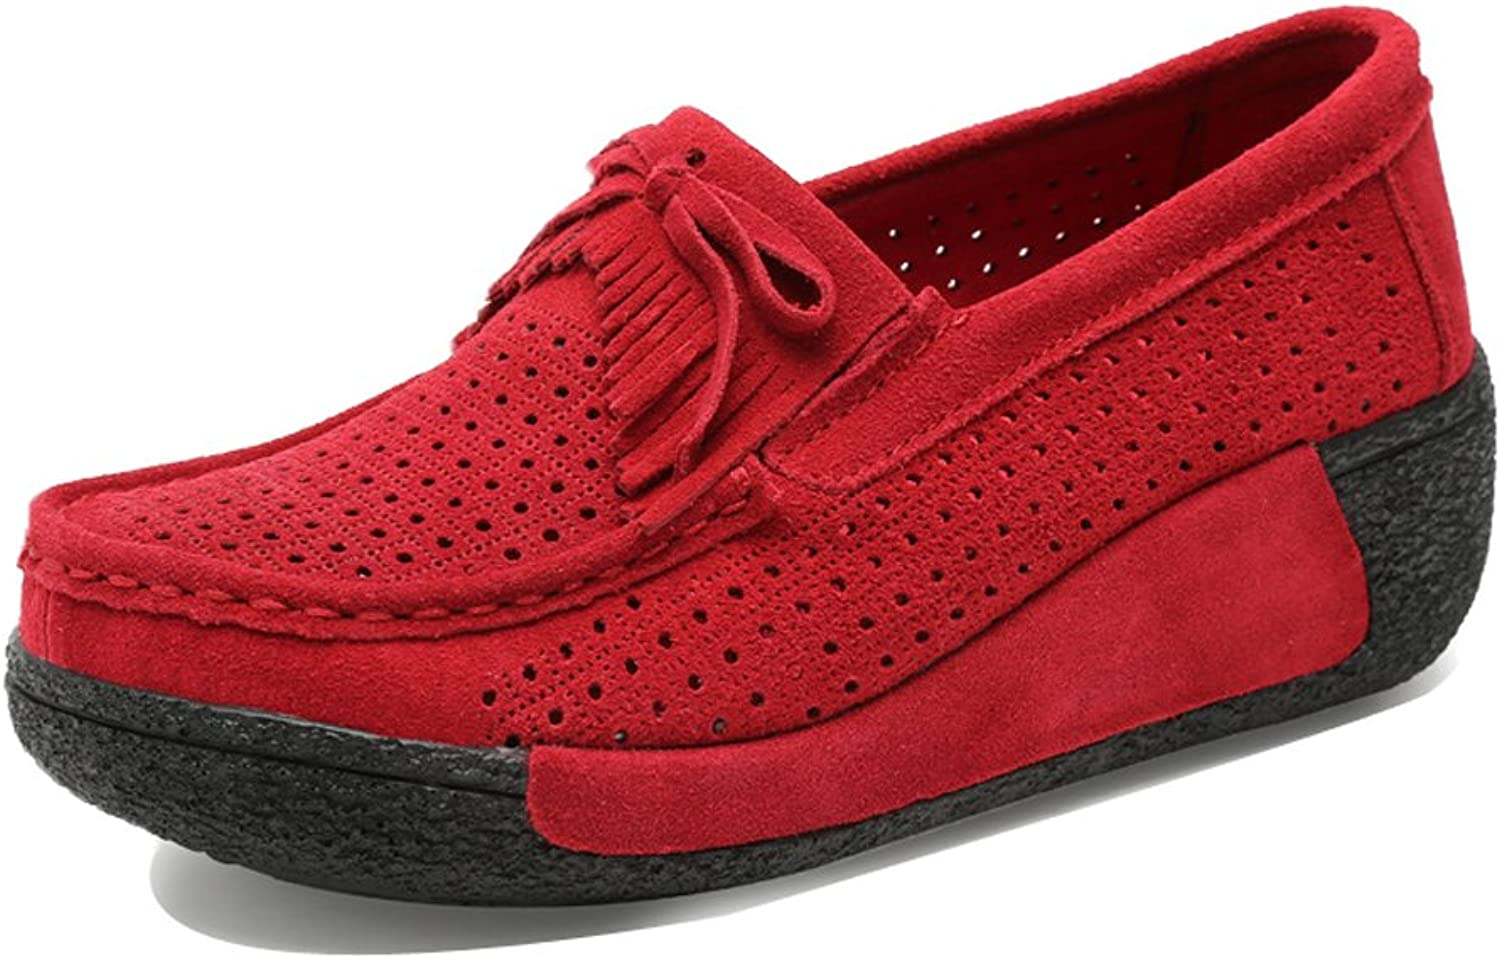 XL1319-1hongse37 EnllerviiD Women Slip On Platform Loafers shoes Cut-Out Fashion Tassel Wedges Sneakers Red 6 B(M) US